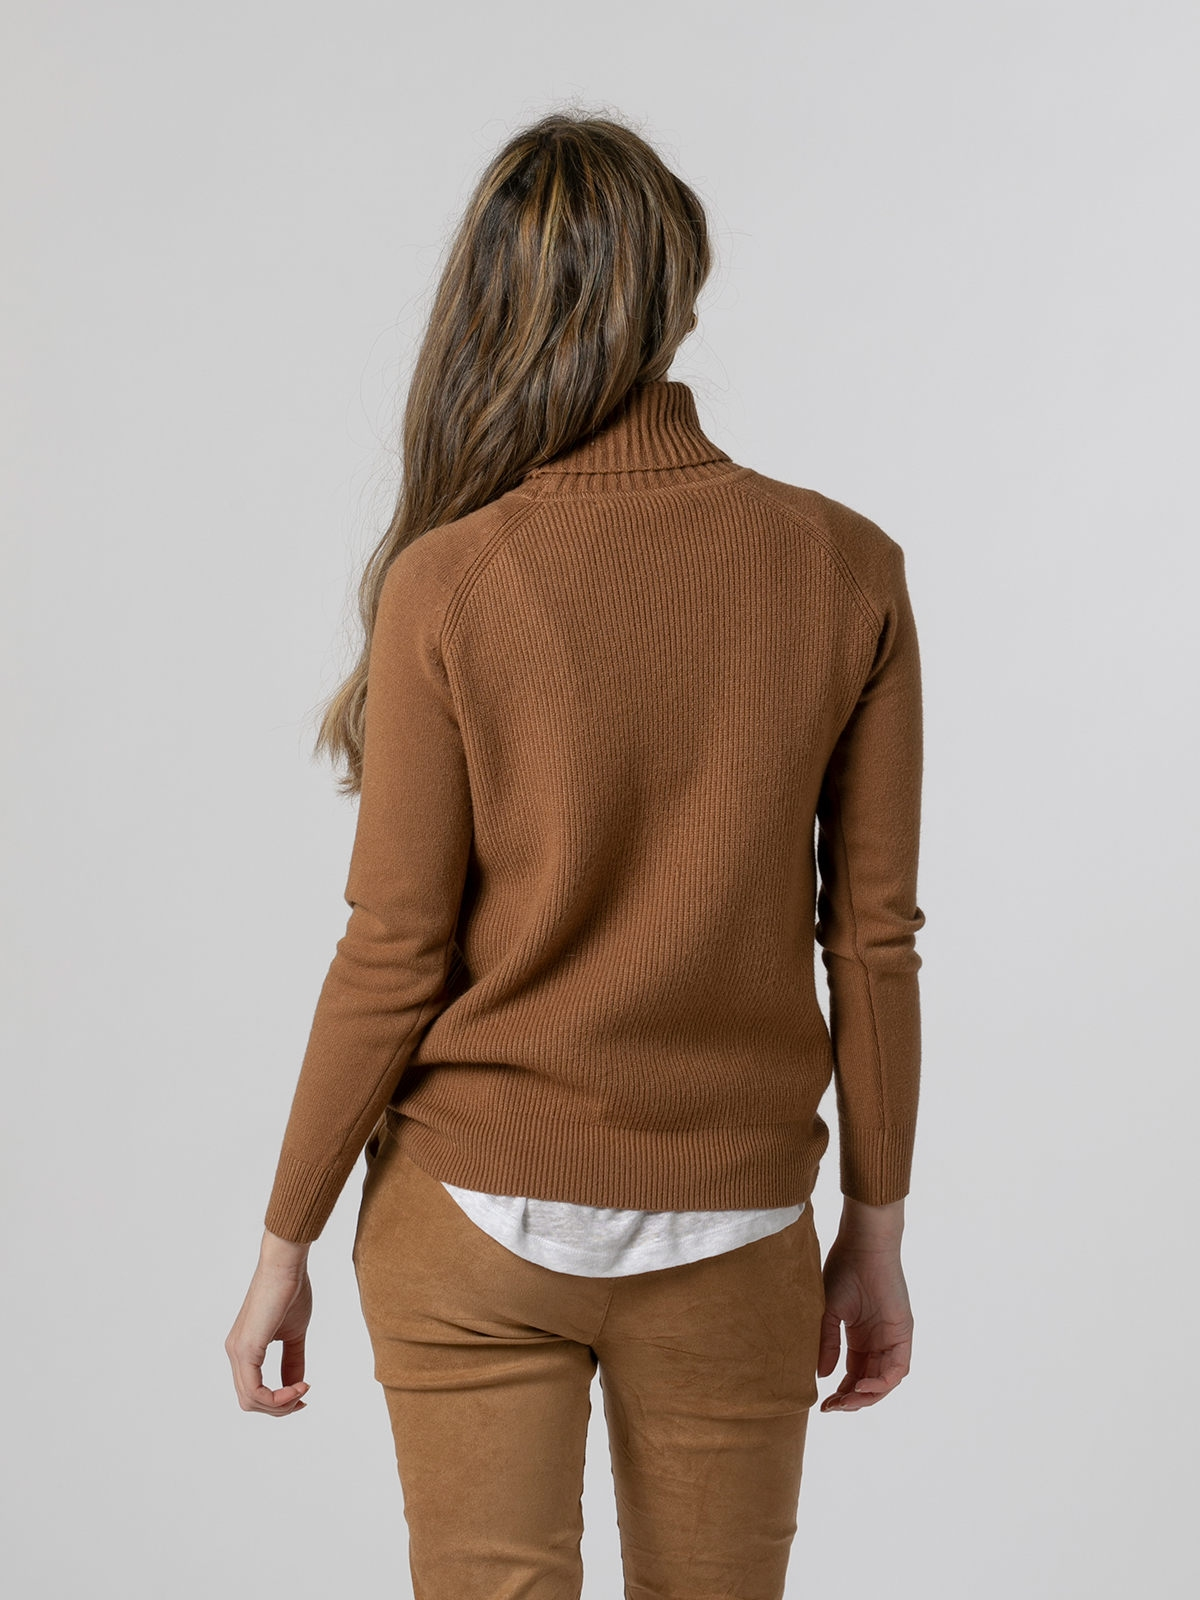 Jersey mujer cuello vuelto canalé Camel